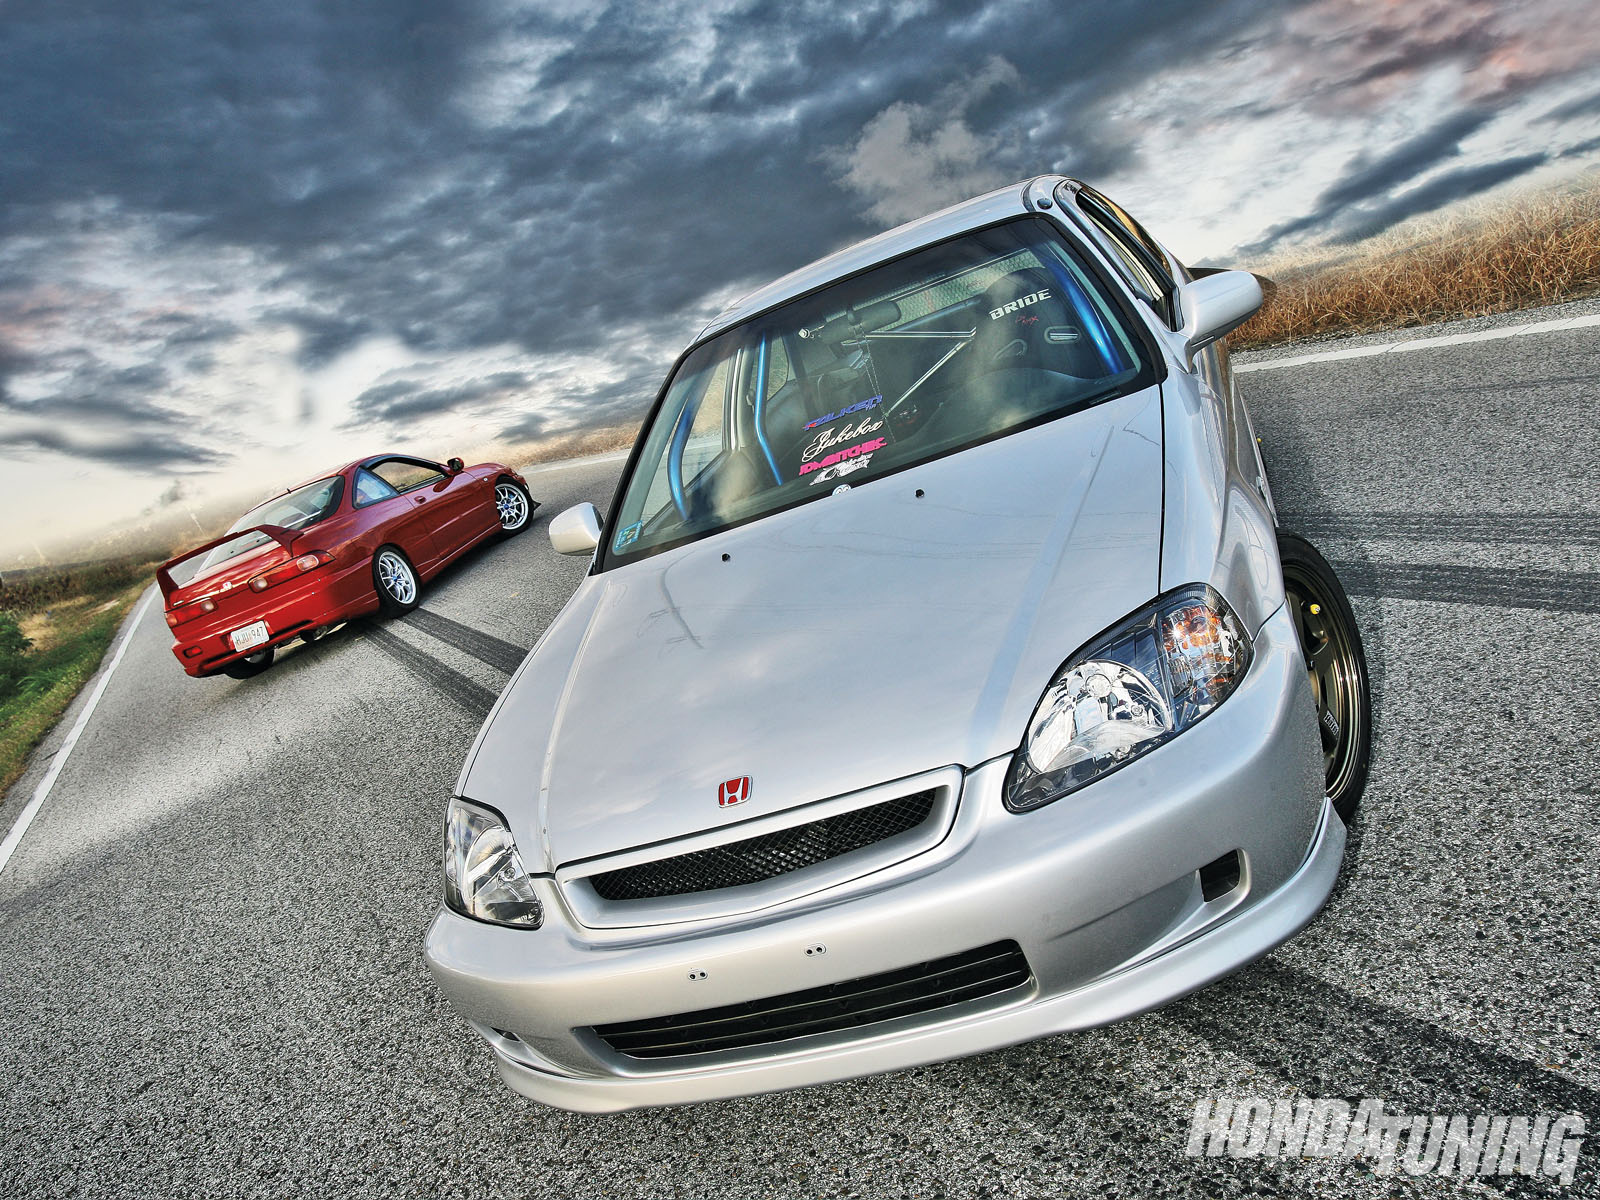 1994 Acura Integra Ls And 1998 Honda Civic Cx Covering All The Bases Honda Tuning Magazine